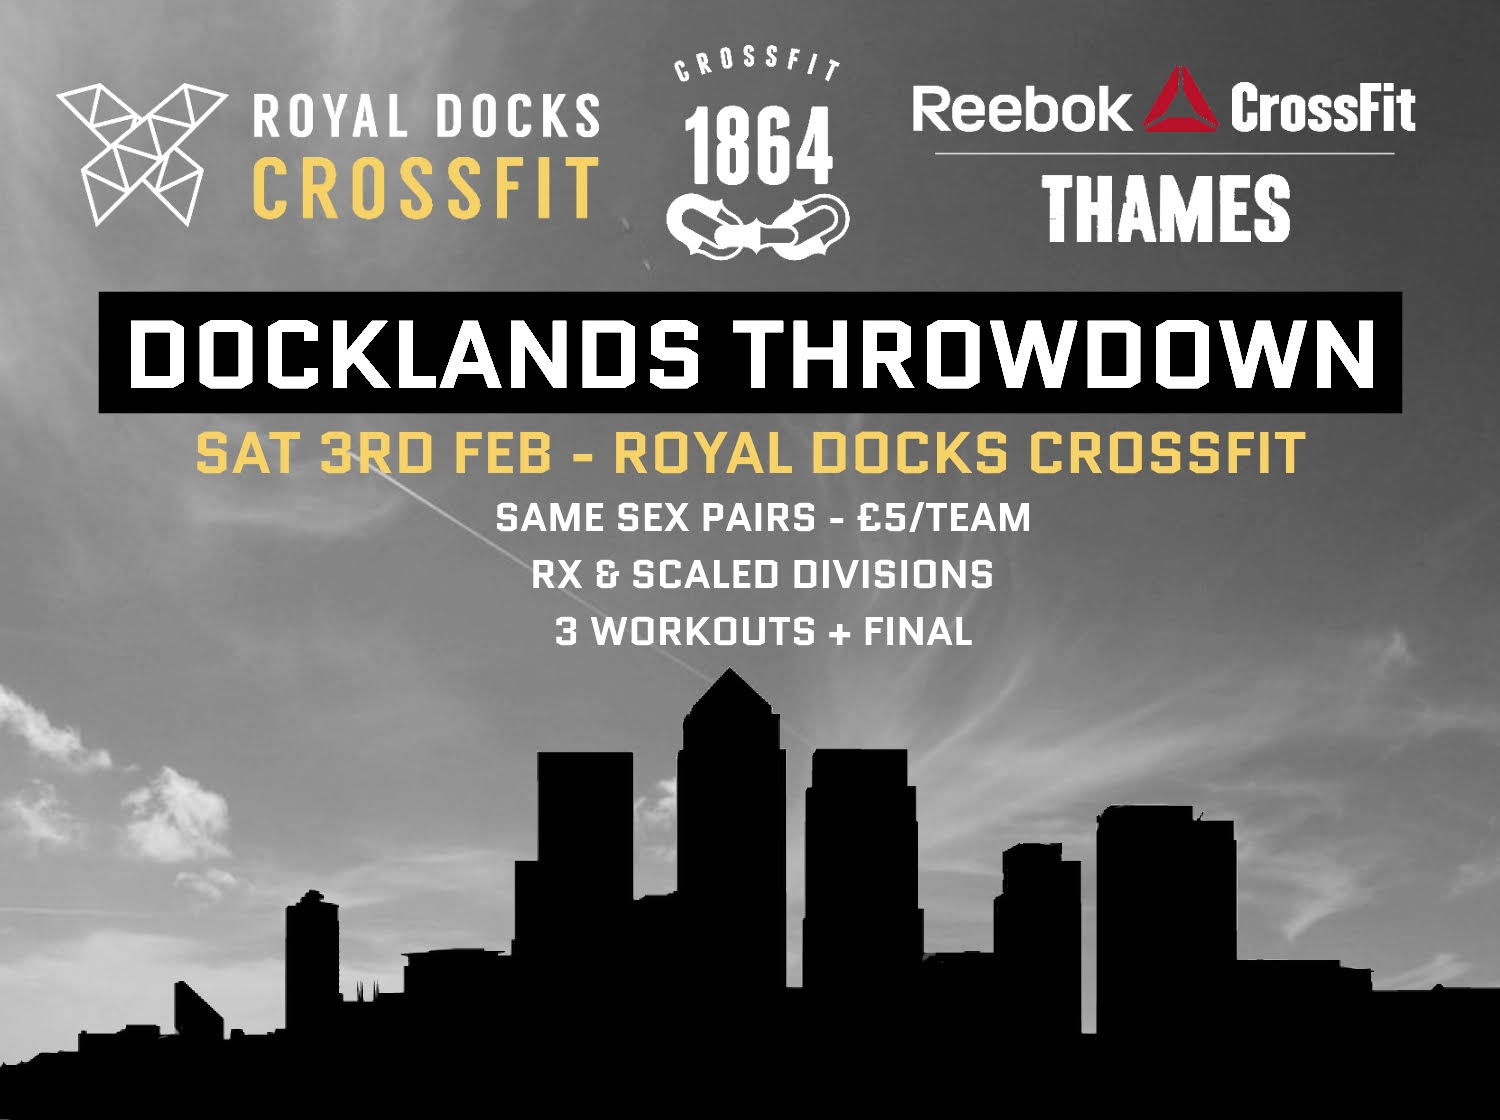 docklandsthrowdown.jpg